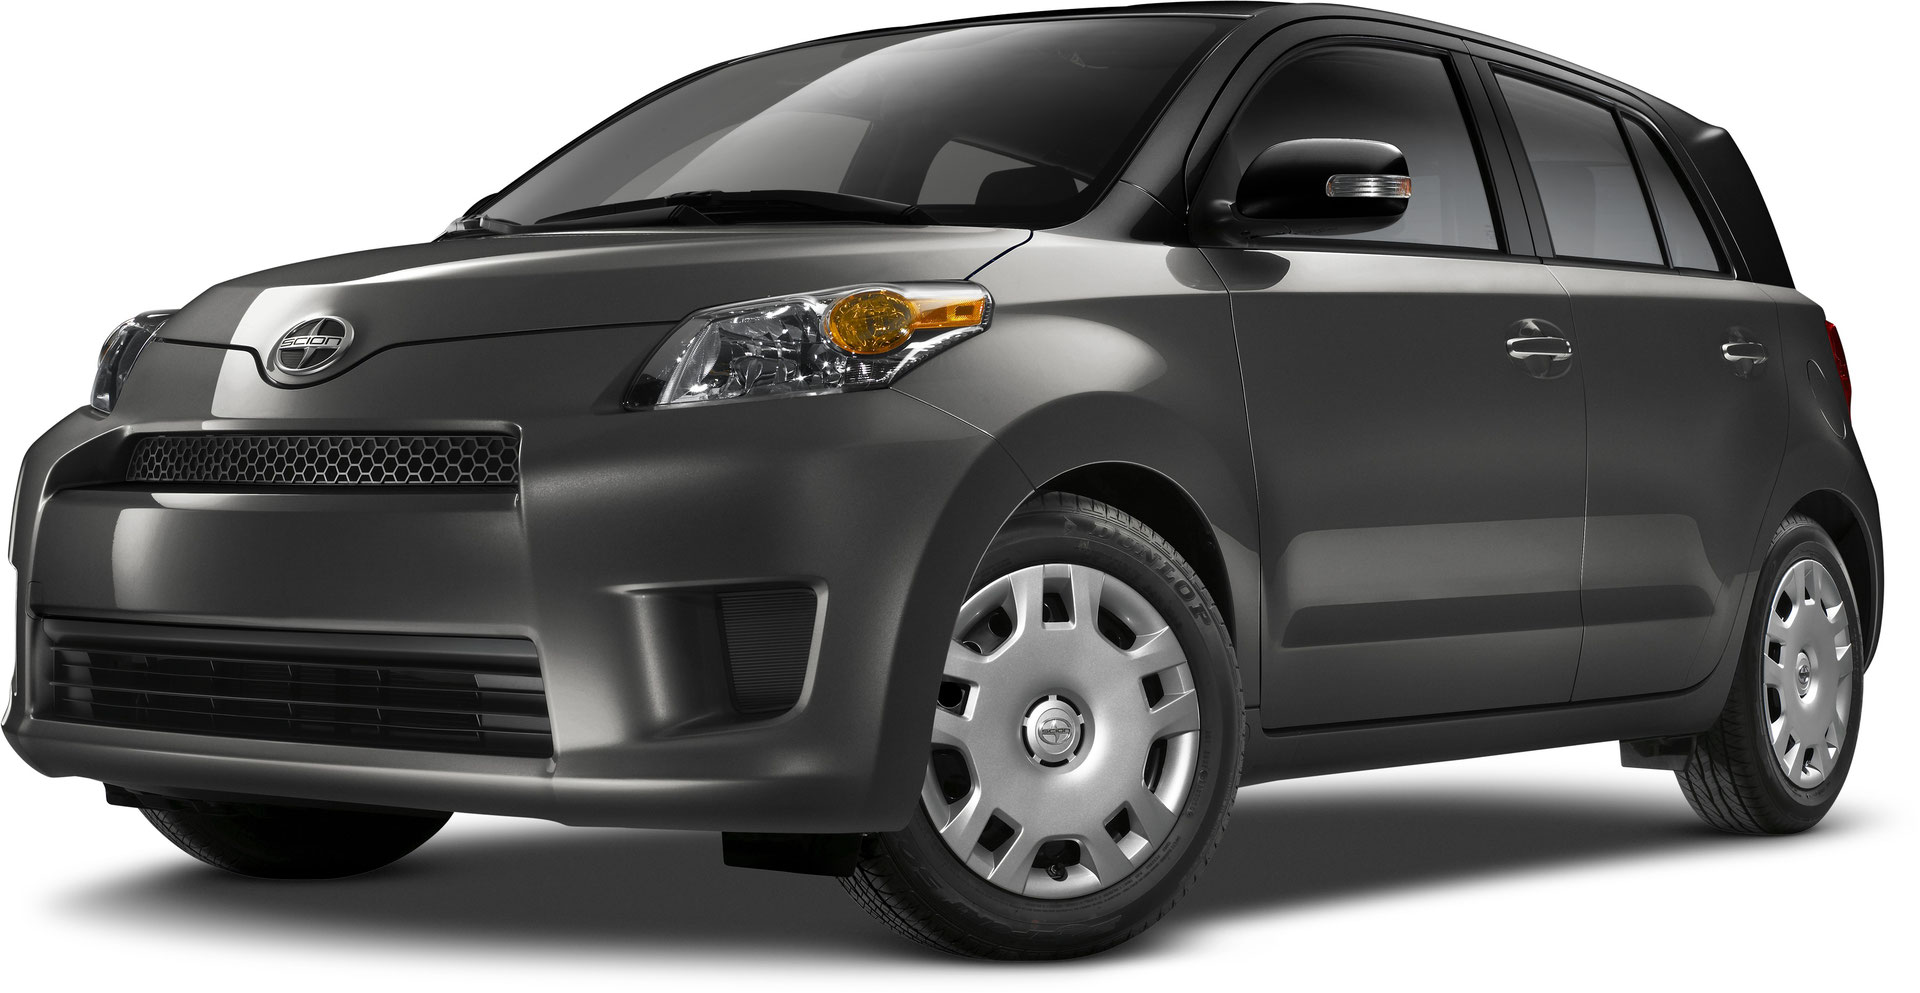 18 Scion Pdf Manuals Download For Free Ar Manual Wiring 2008 Xd Fuel Filter Diagram Fault Codes